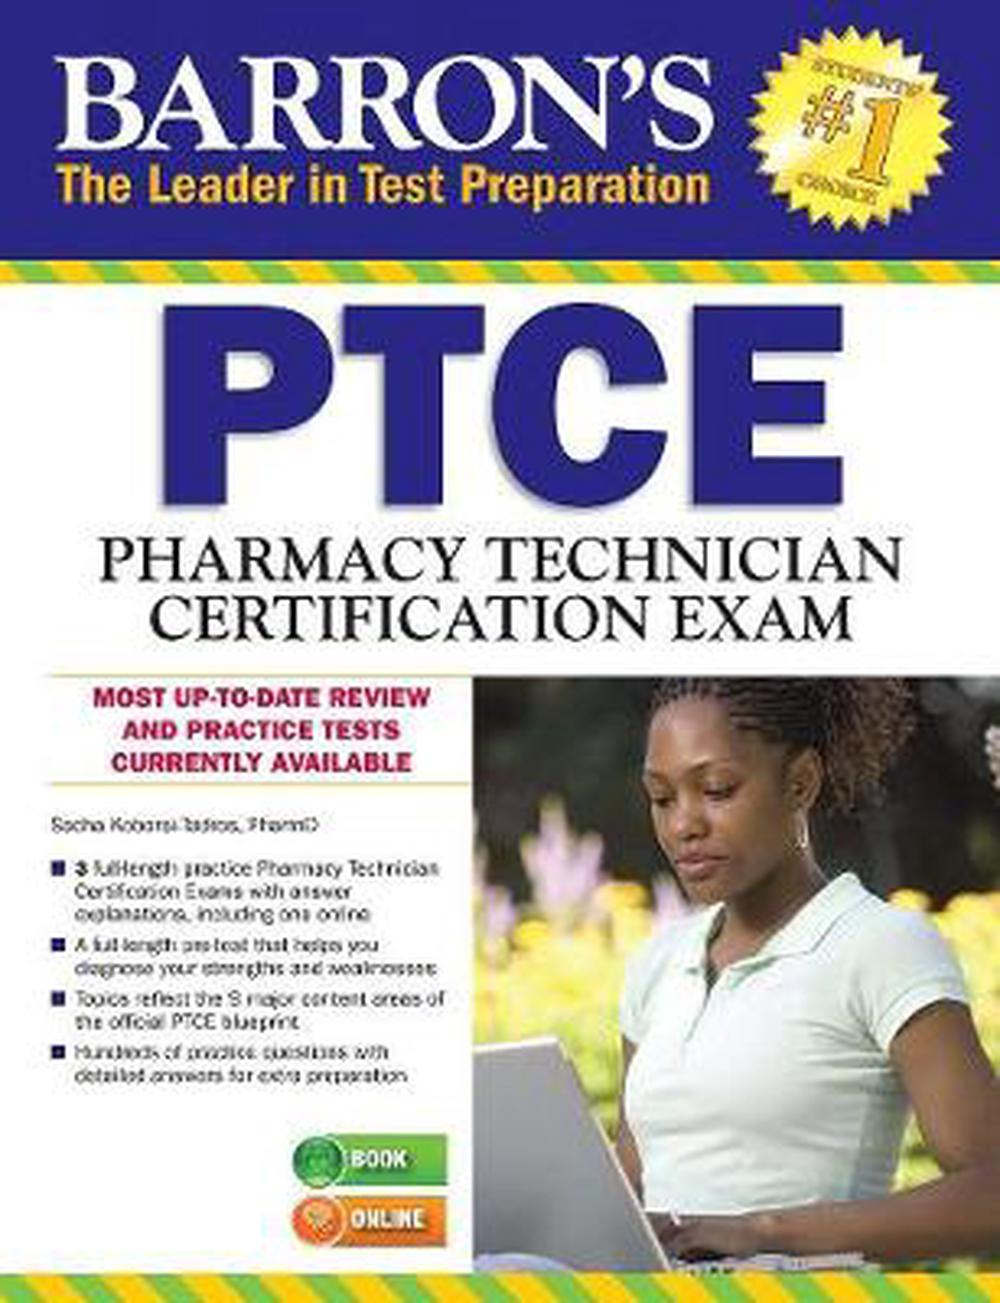 Barrons ptcepharmacy technician certification exam by sacha barrons ptcepharmacy technician certification exam xflitez Choice Image